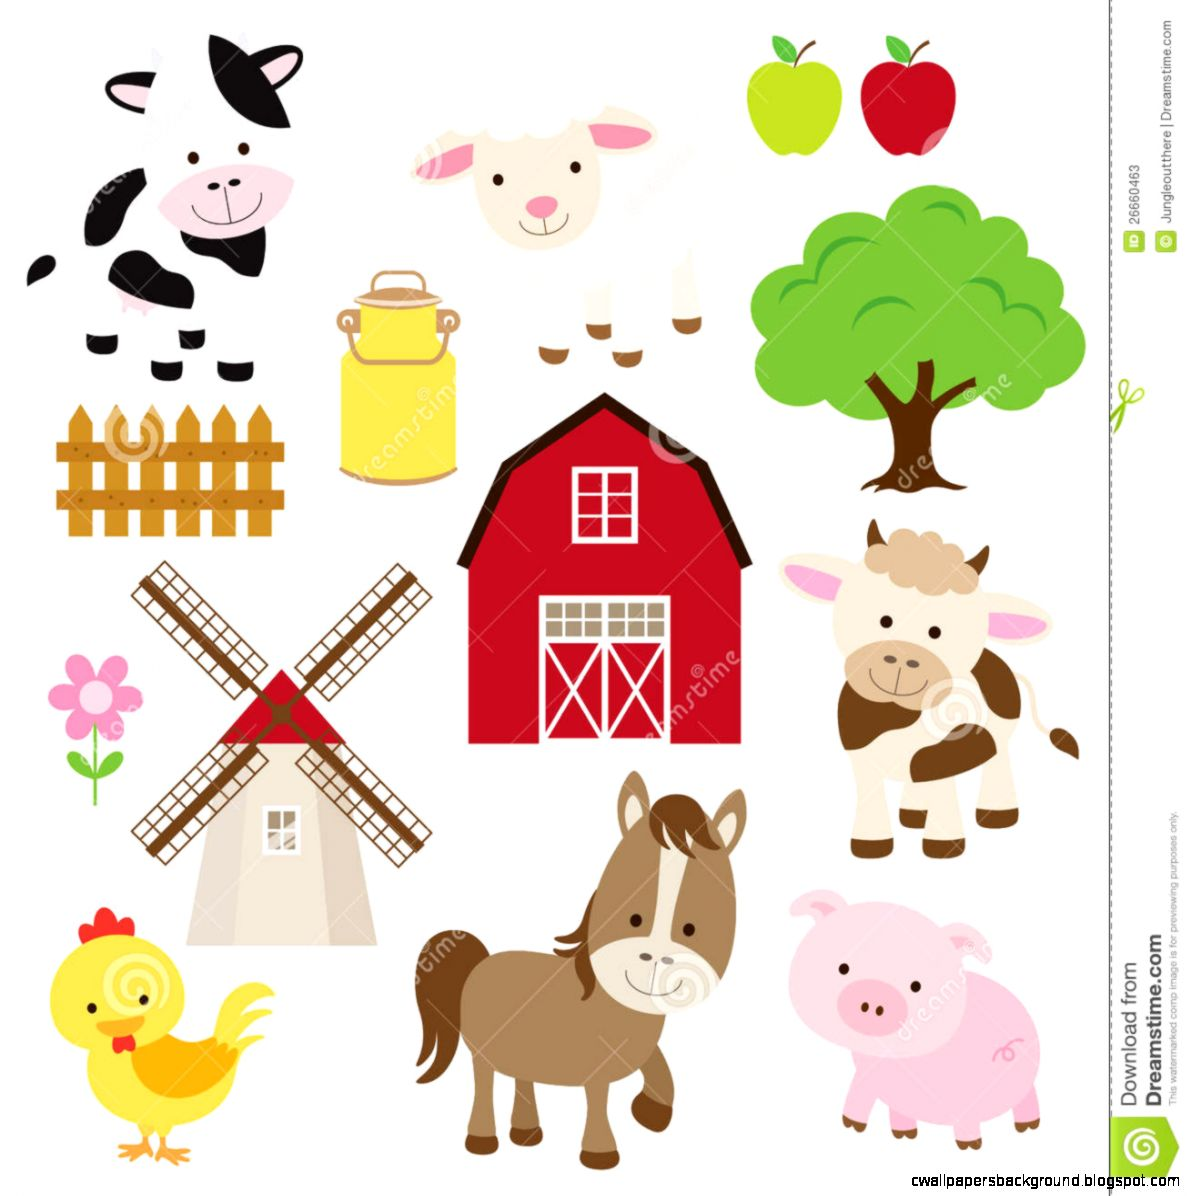 Baby animal clipart free 4 » Clipart Station.